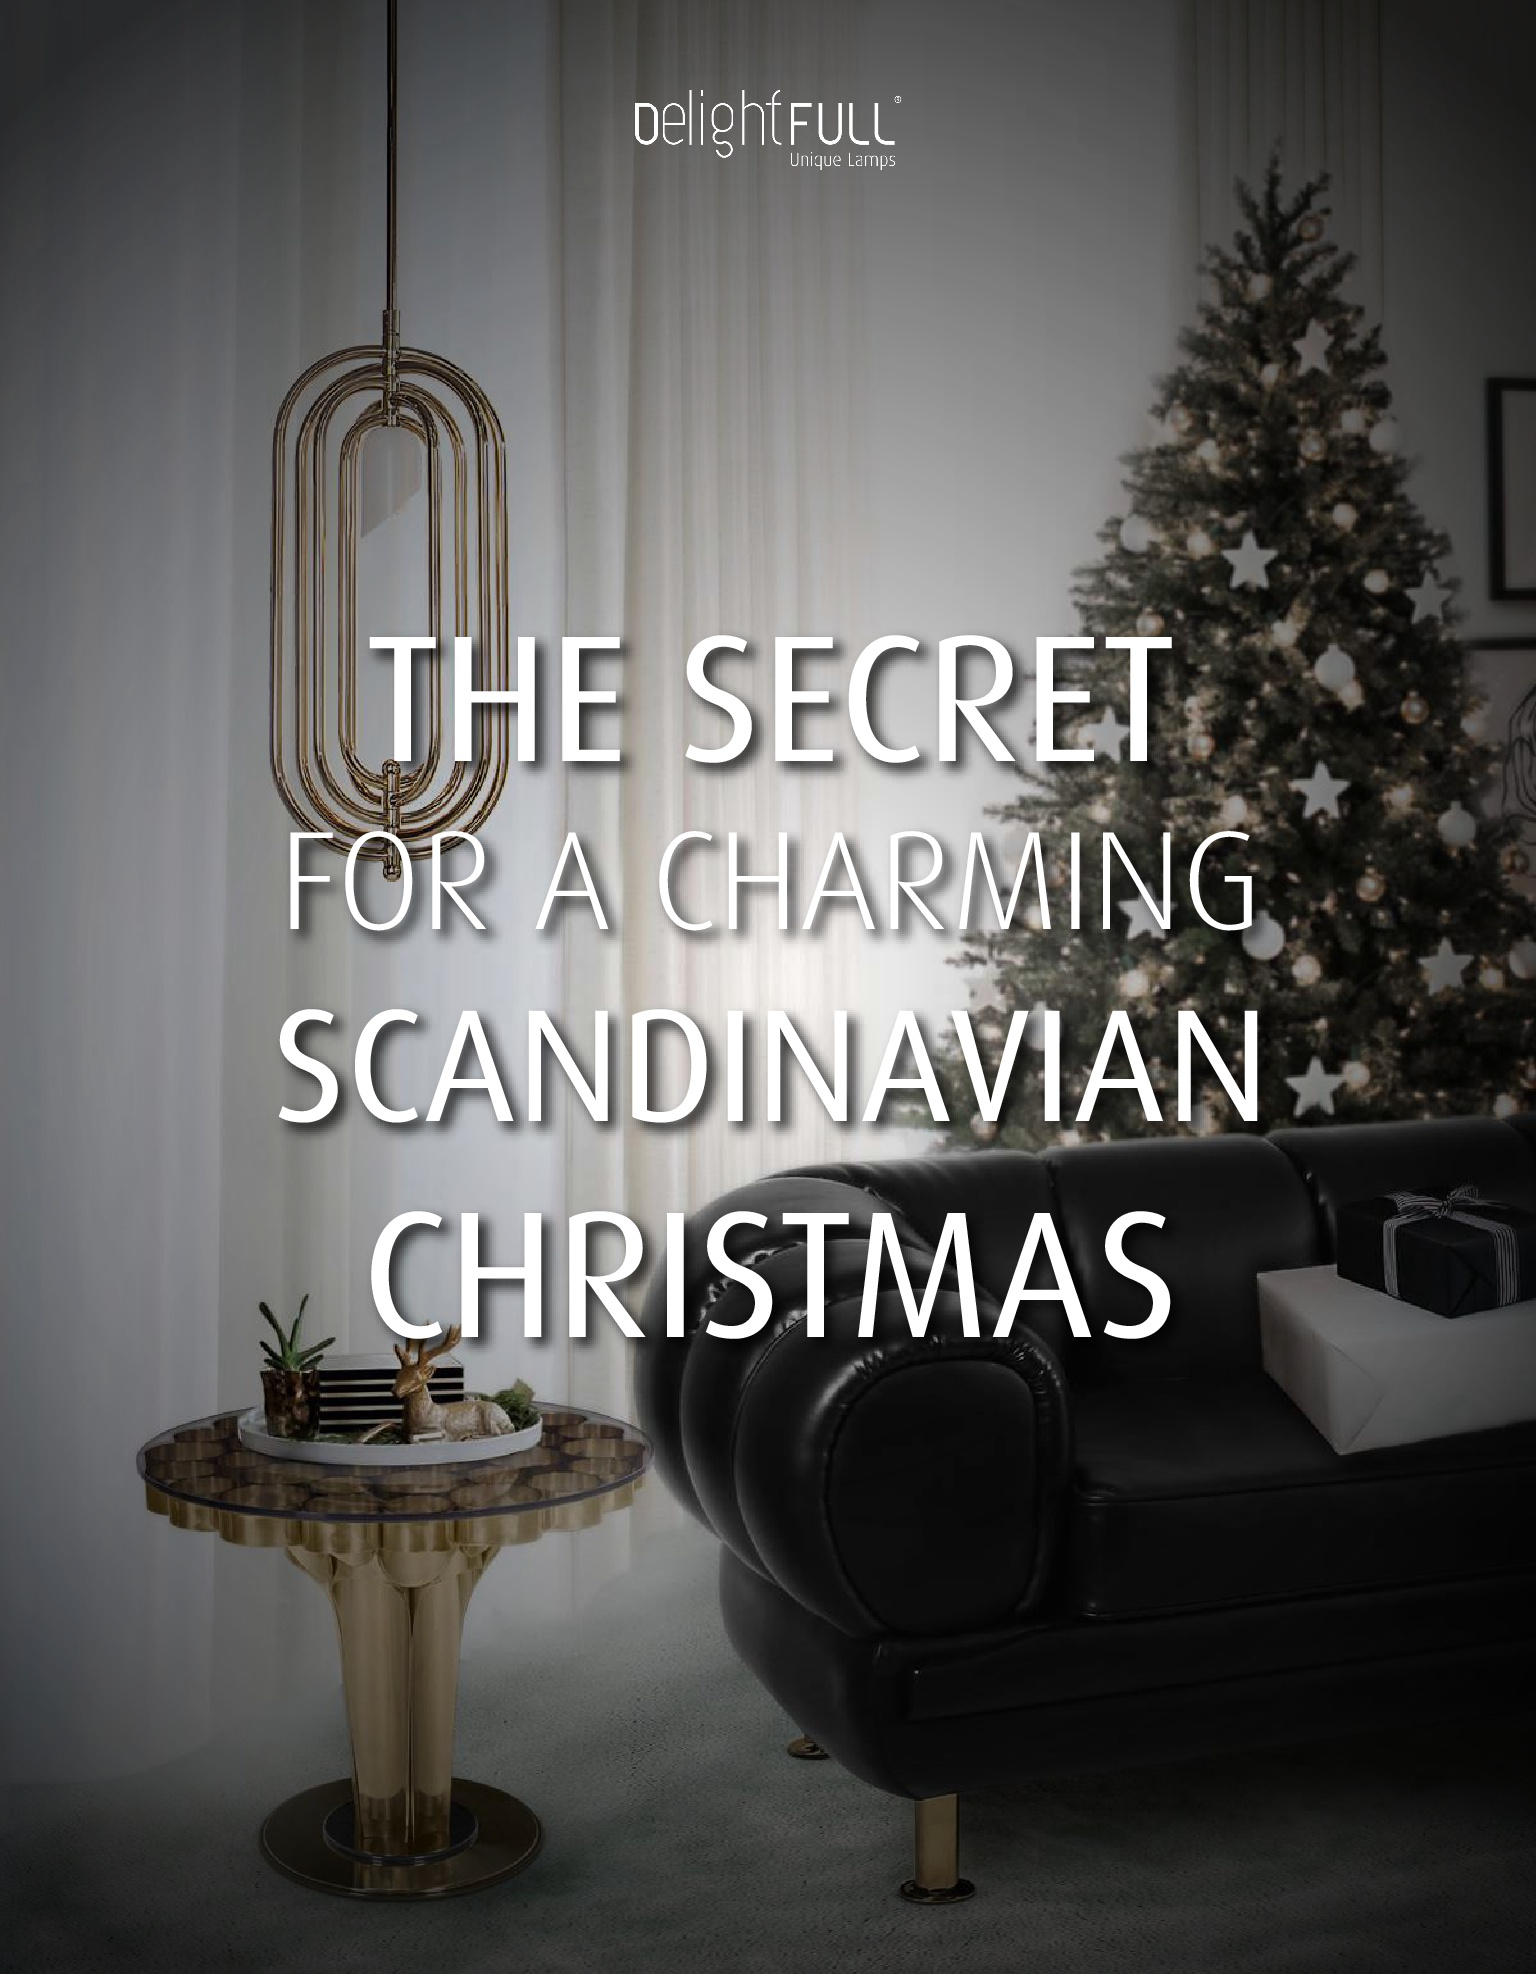 New Ebook The Secret for a Charming Scandinavian Christmas FEAT (2) scandinavian christmas New Ebook: The Secret for a Charming Scandinavian Christmas New Ebook The Secret for a Charming Scandinavian Christmas FEAT 2